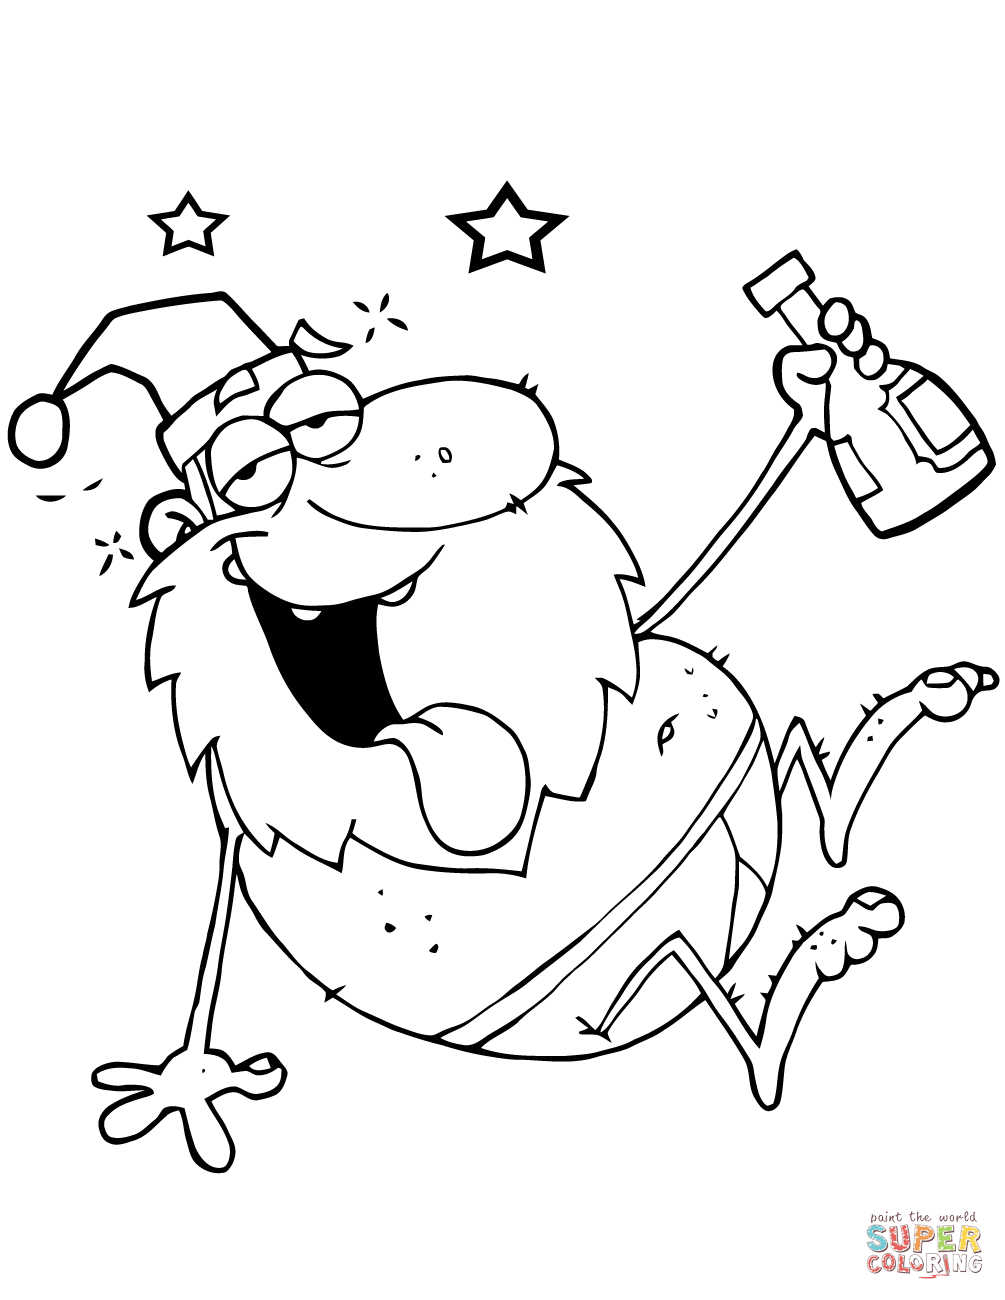 Coloring Pages ~ Santa Coloring Pages Printable Free Claus Page - Santa Coloring Pages Printable Free